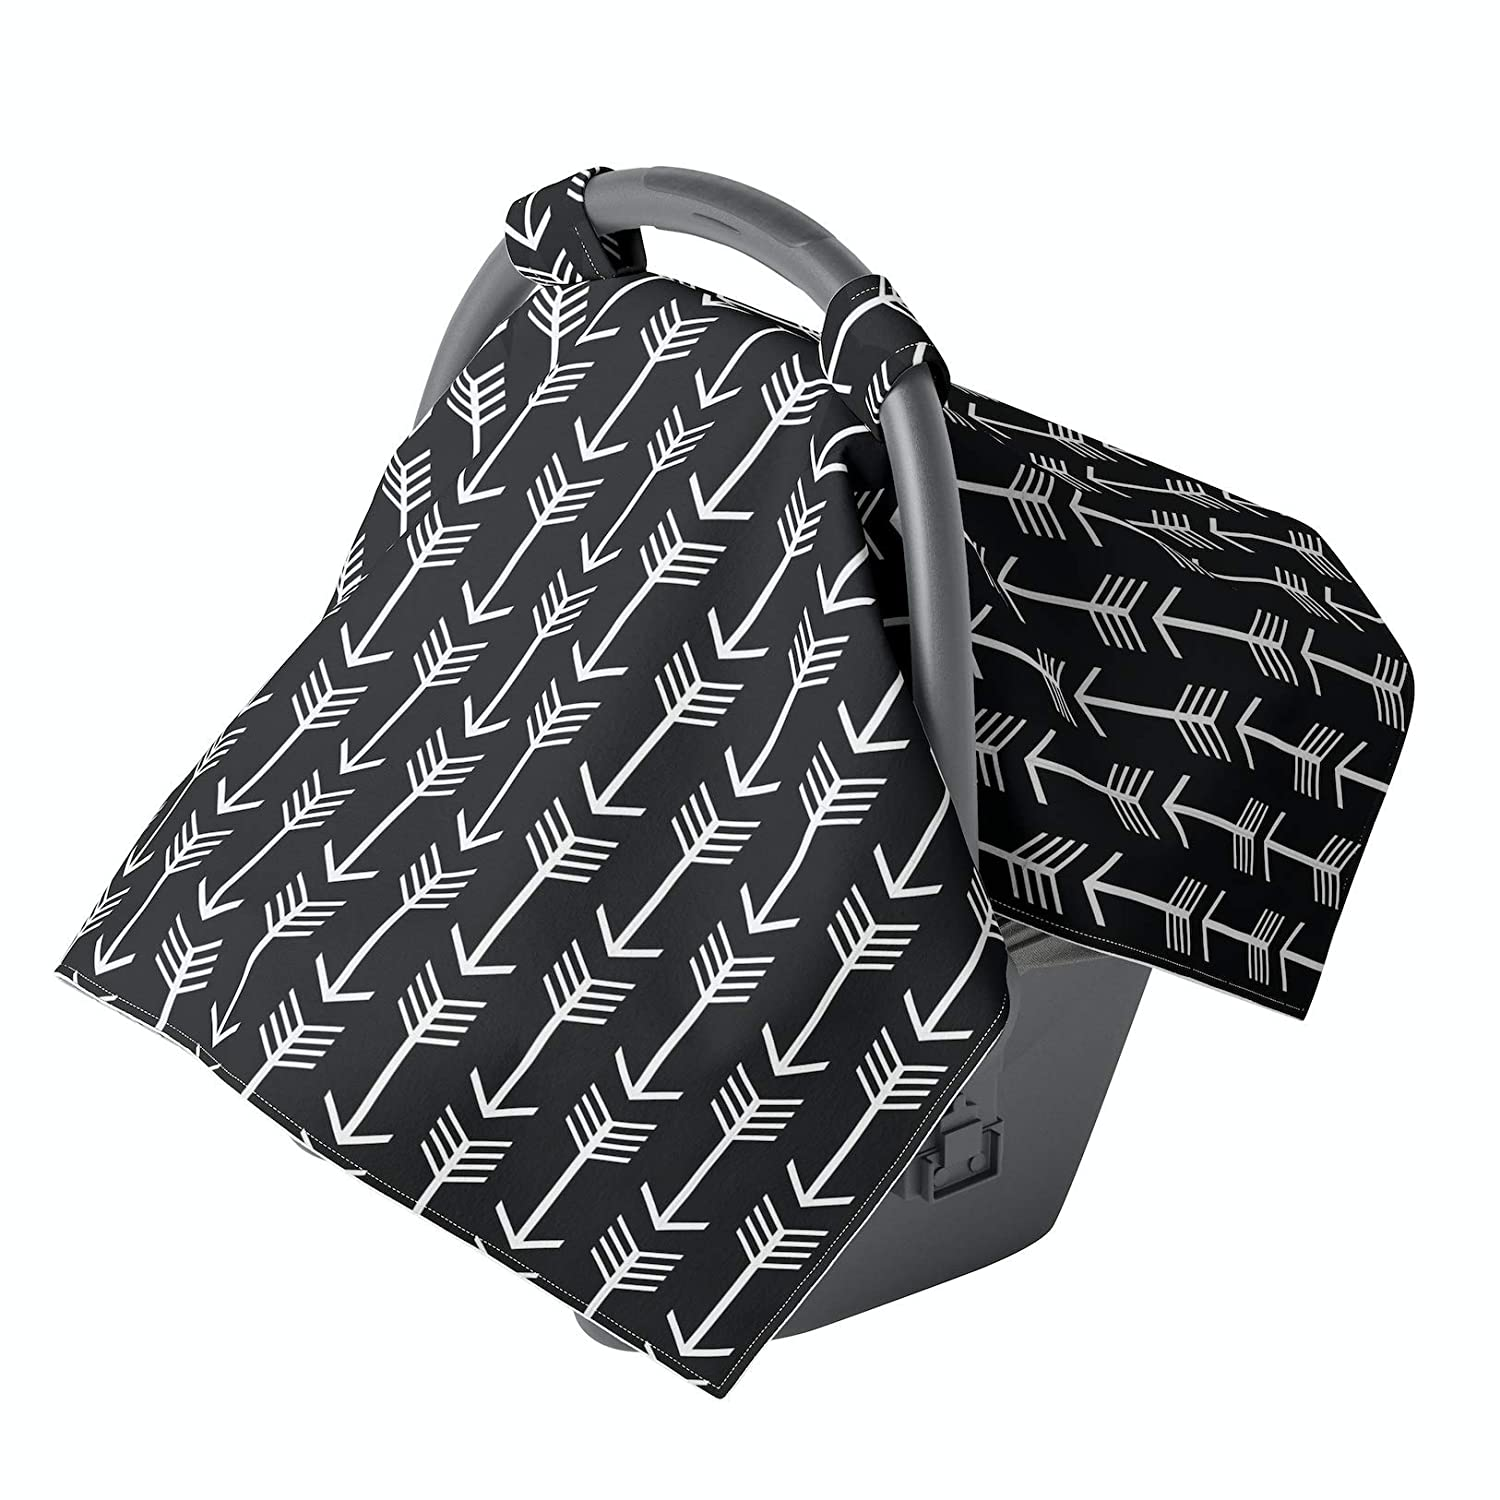 Car seat Covers for Babies - Carseat Canopy - Baby car seat Cover for Boys and Infant Girls (Arrows)